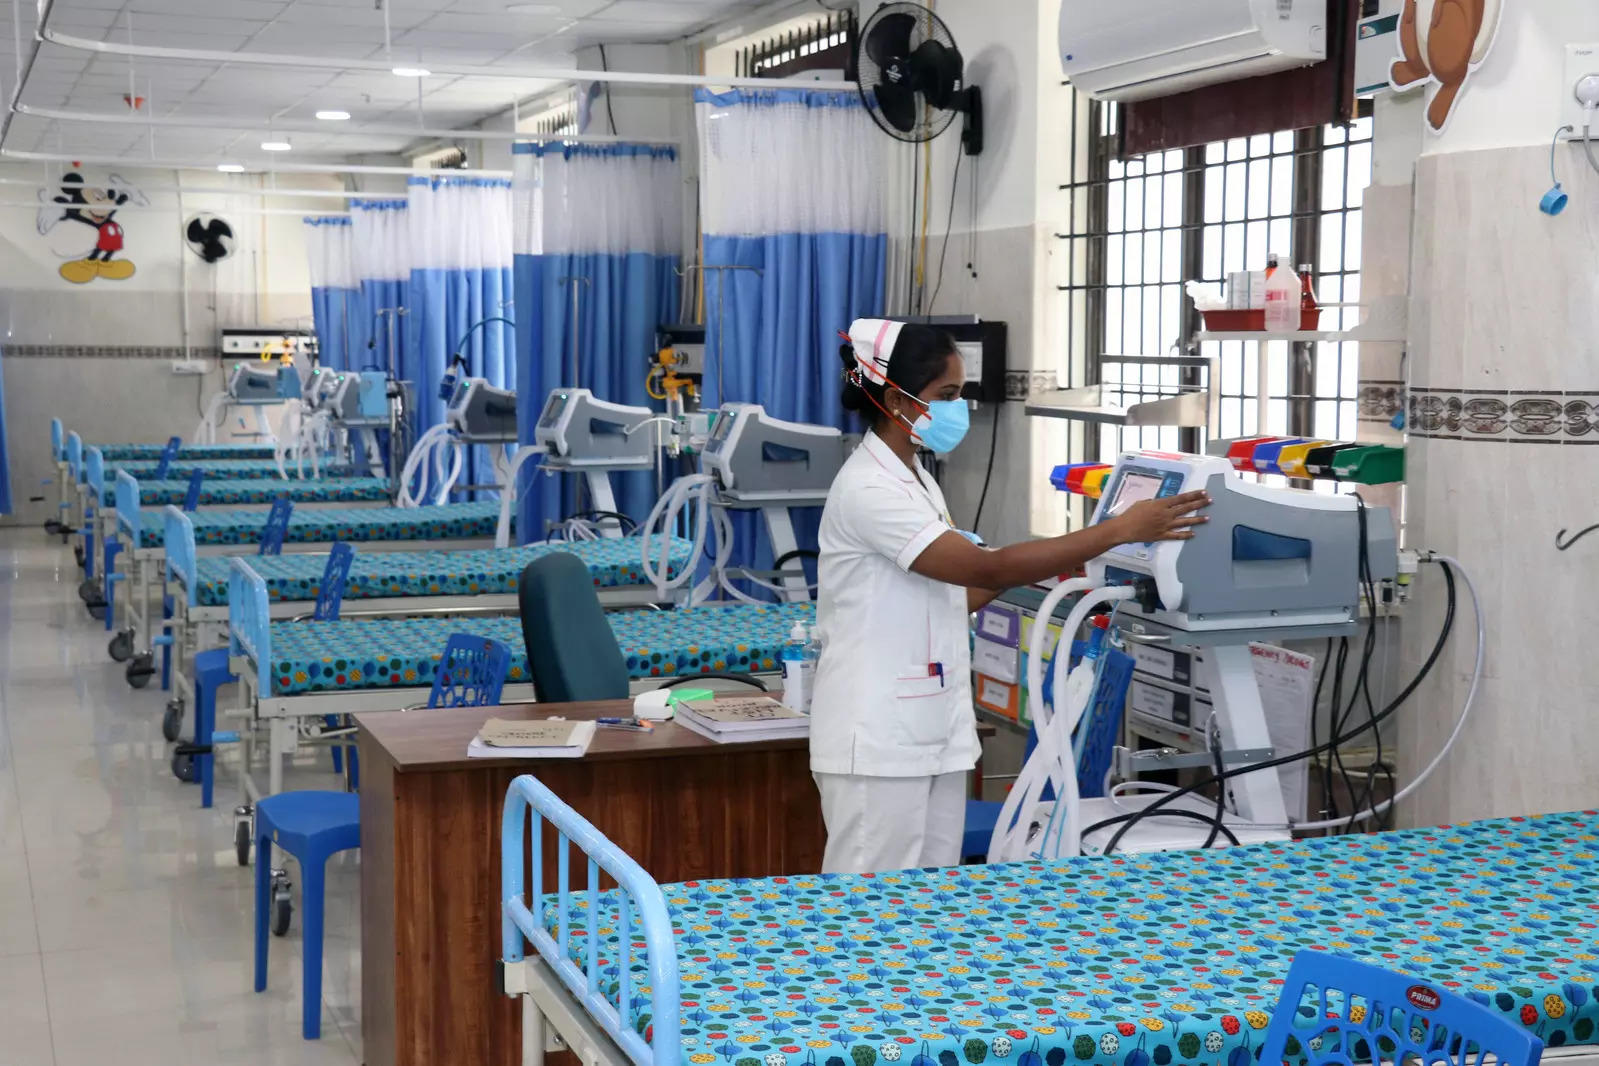 Ready to combat possible third wave of COVID-19: Jharkhand's Chief Medical officer